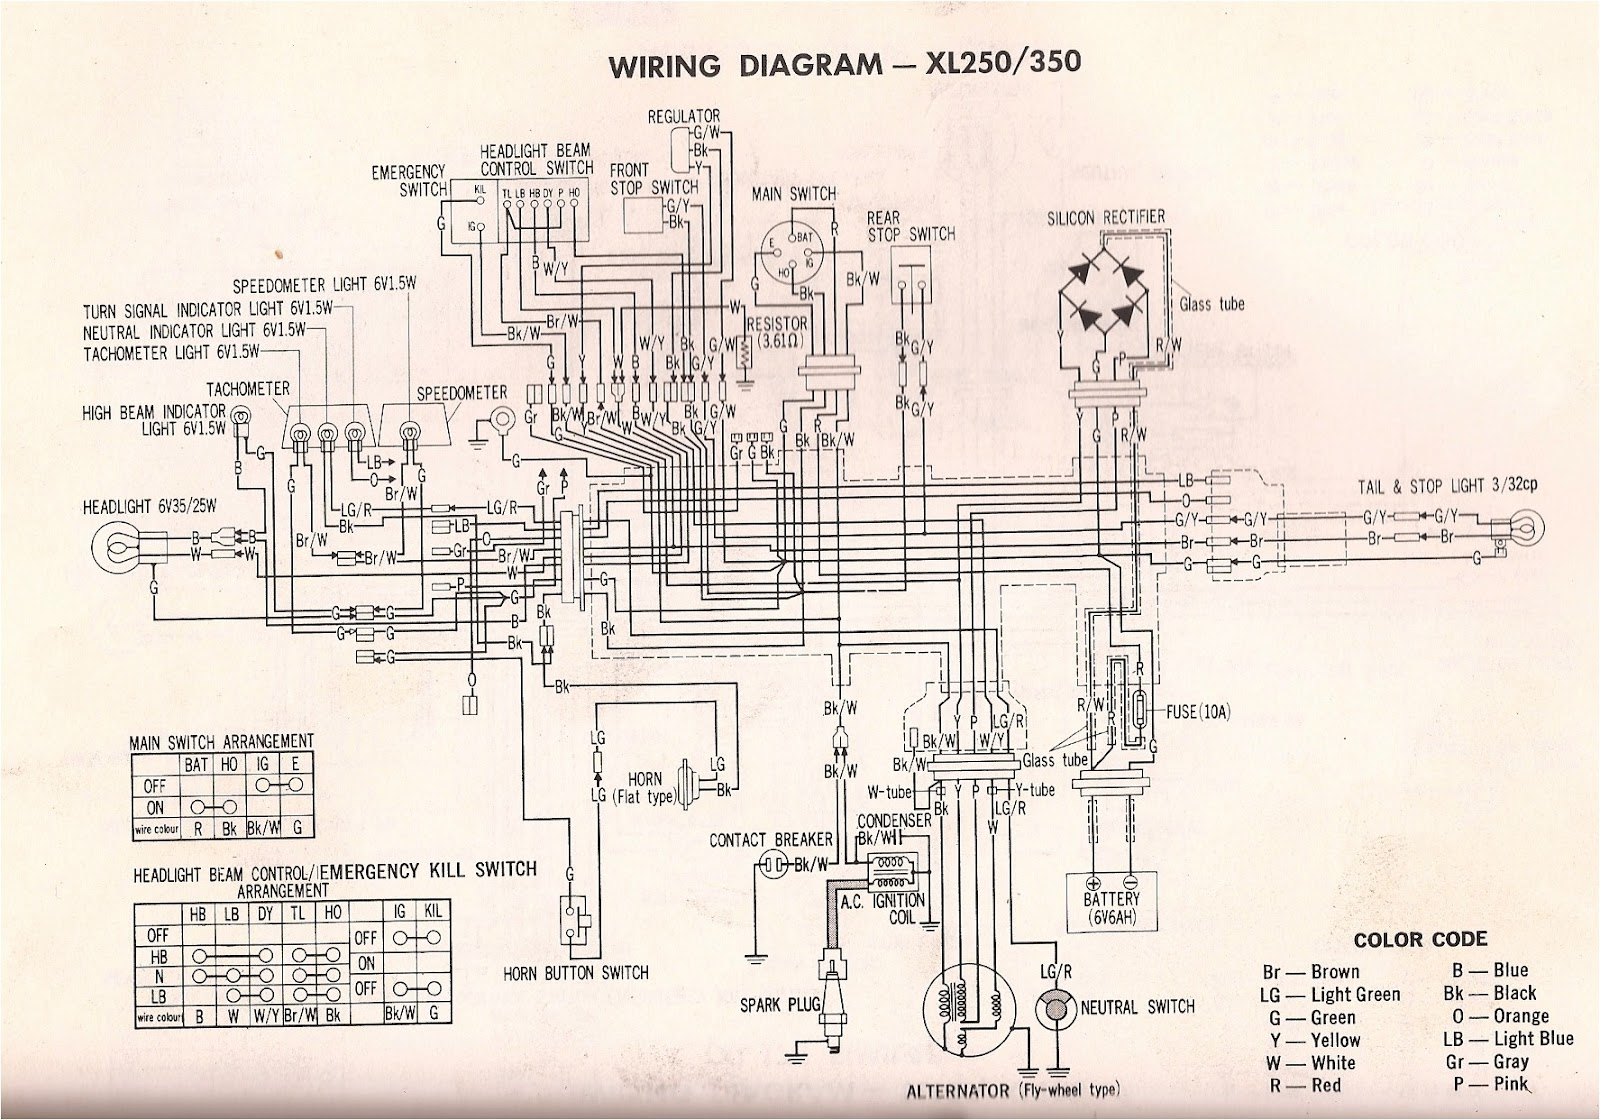 XL350+Wiring+diagram+S r4l xl350 wiring diagram (and xl250) 1978 honda xl 125 wiring diagram at readyjetset.co